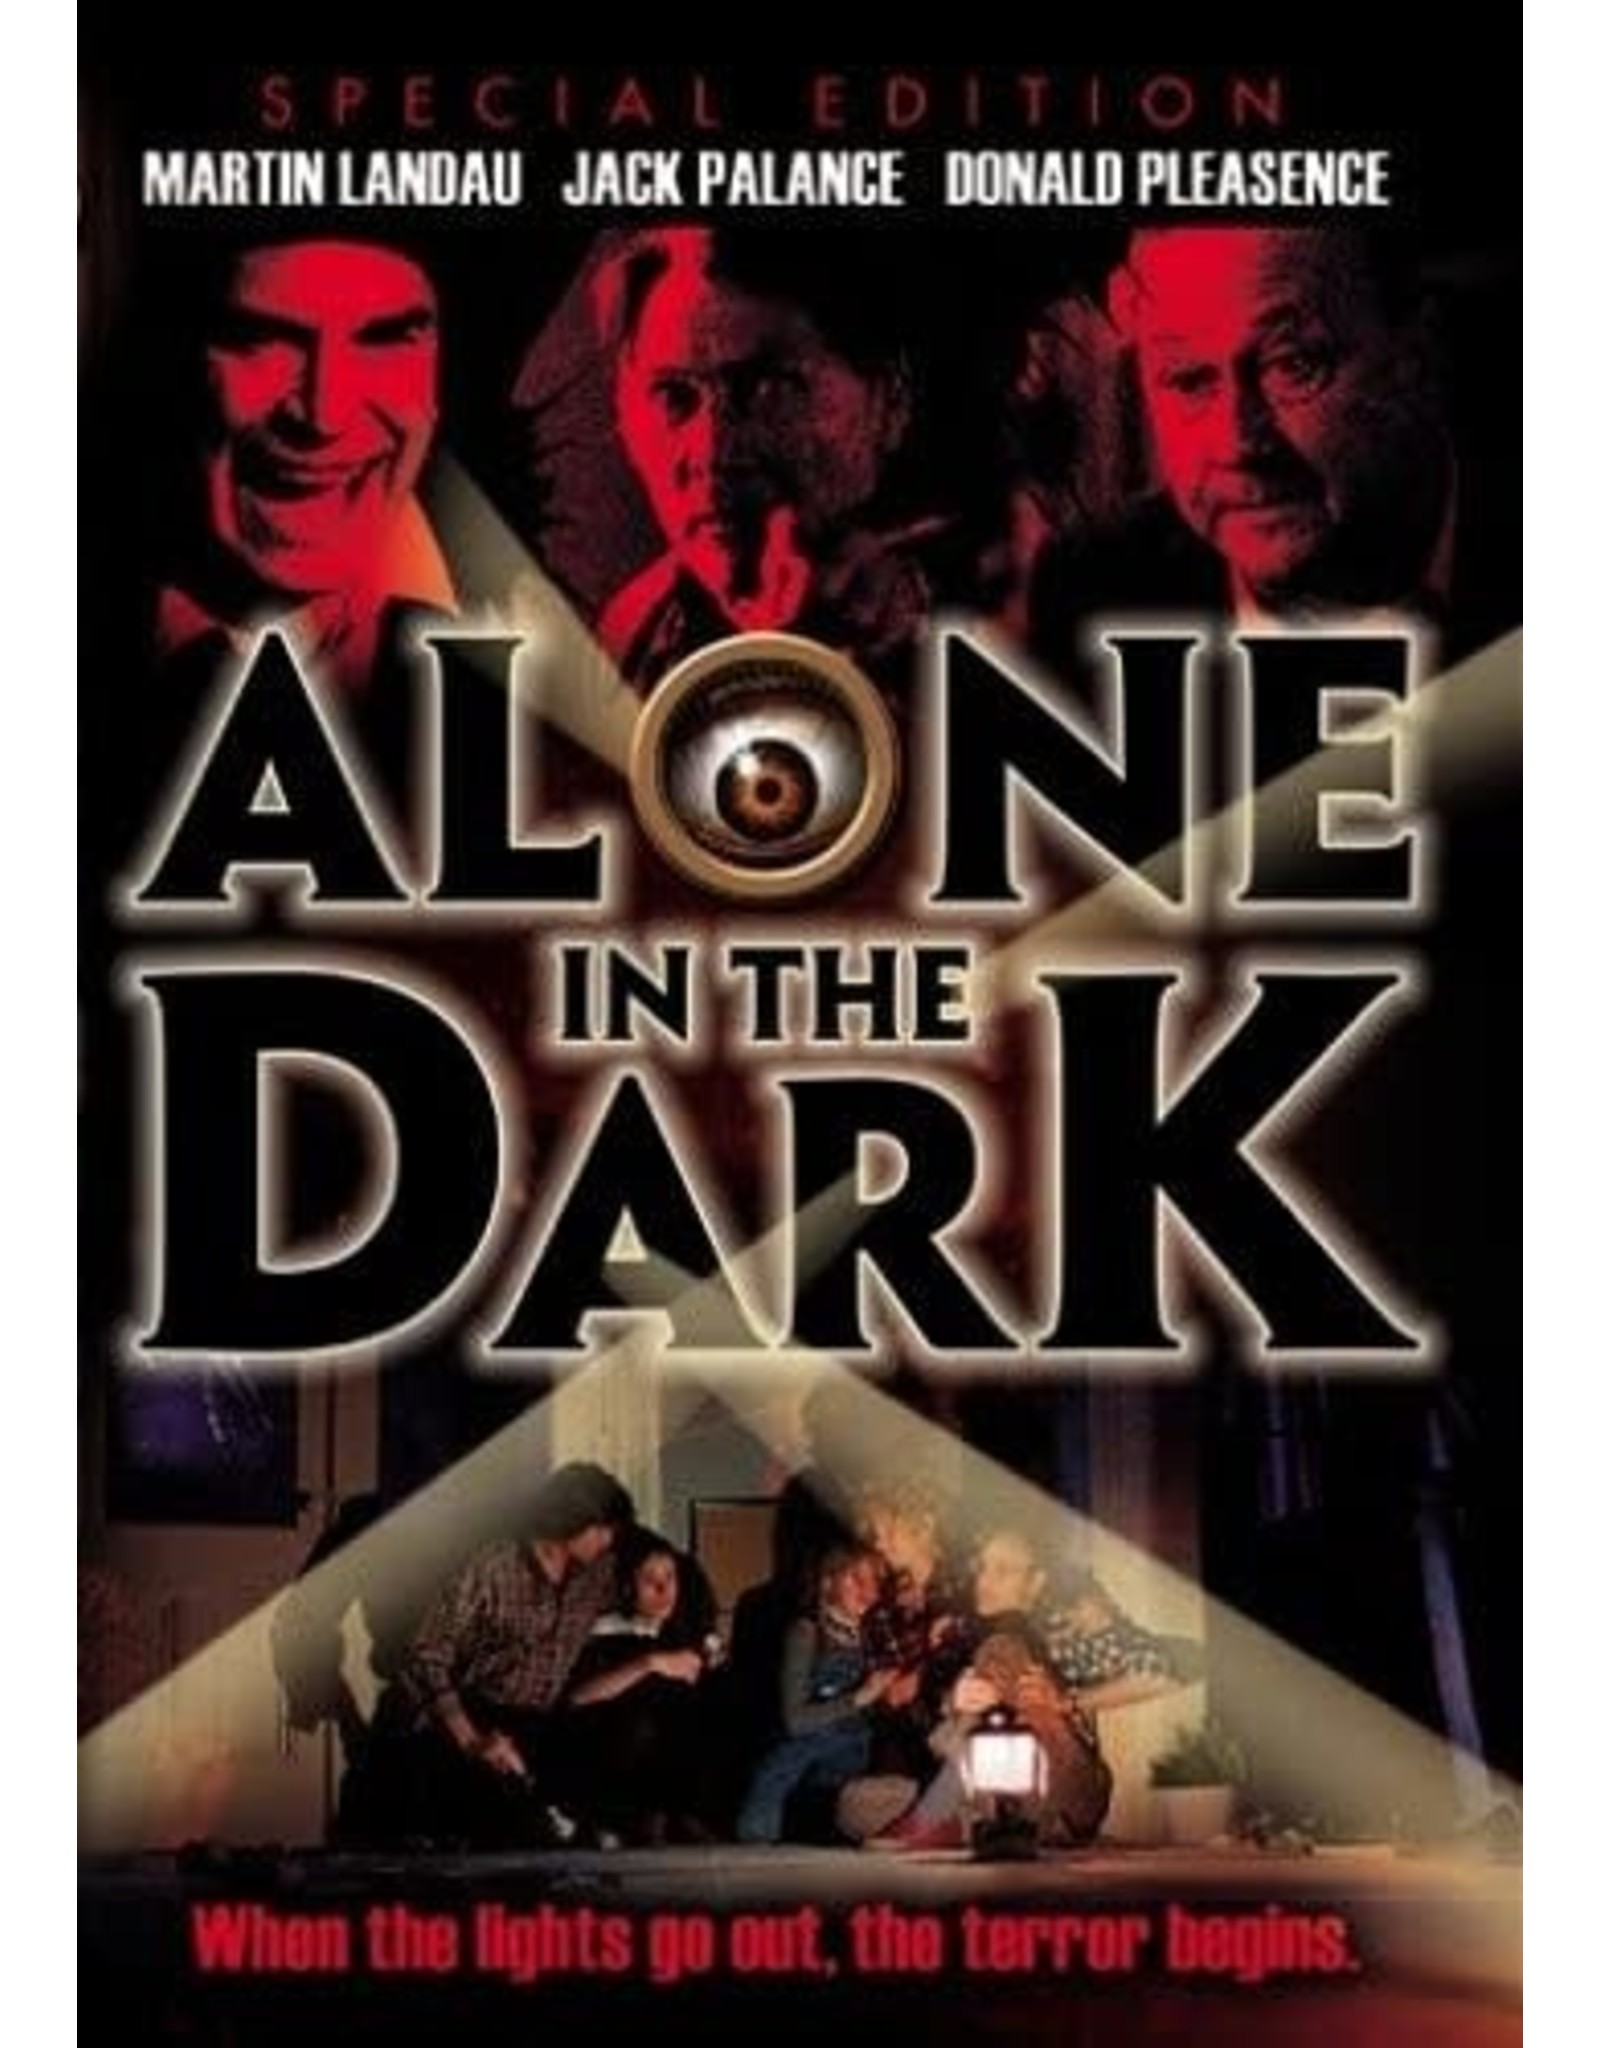 Horror Cult Alone in the Dark - Special Edition